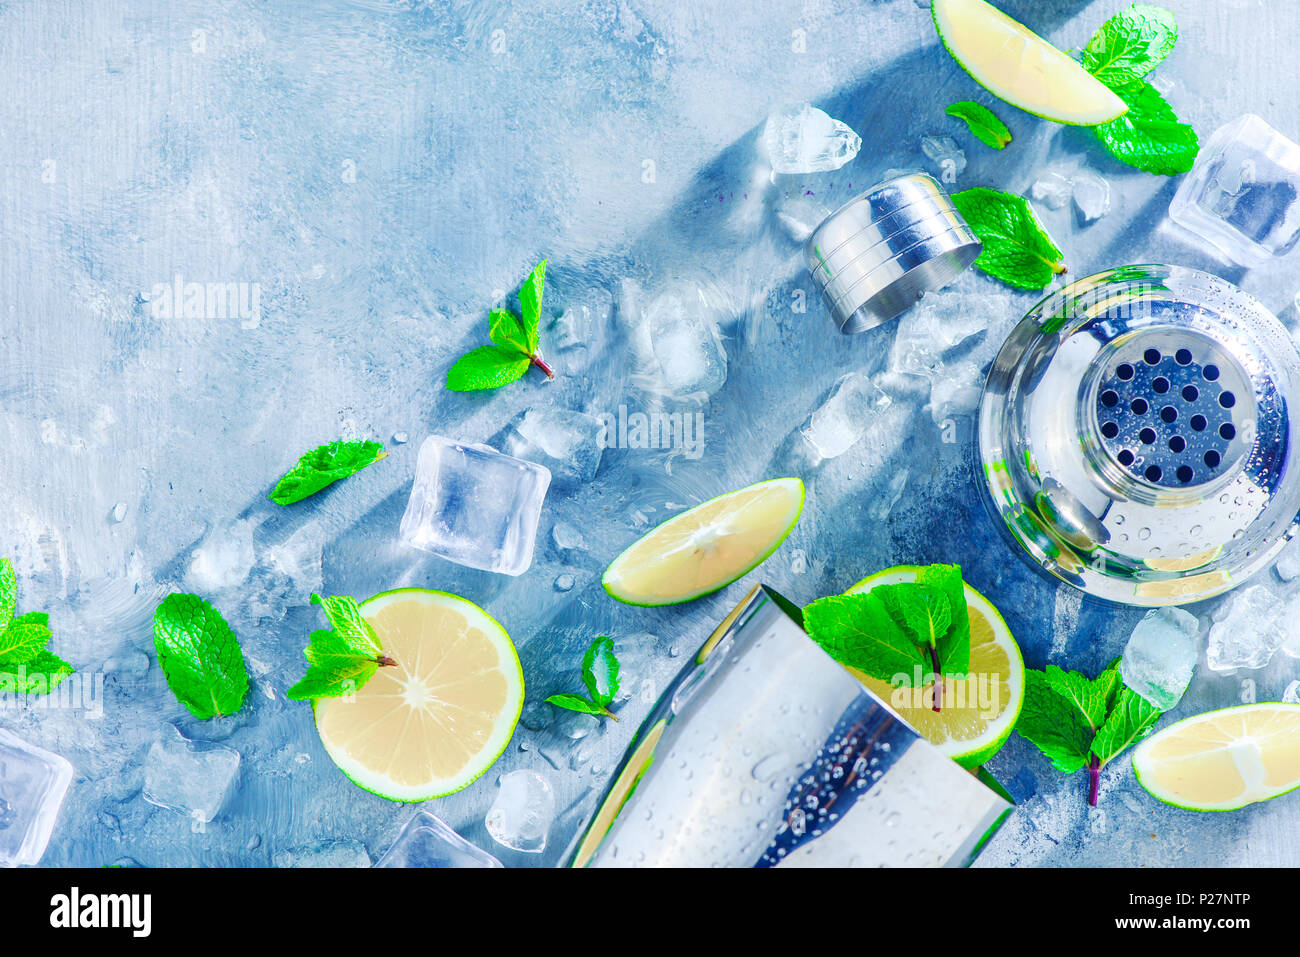 Shaker and bar accessories flat lay. Fresh mojito cocktail ingredients, mint, lime and ice cubes on a gray stone background. Summer drink concept with Stock Photo